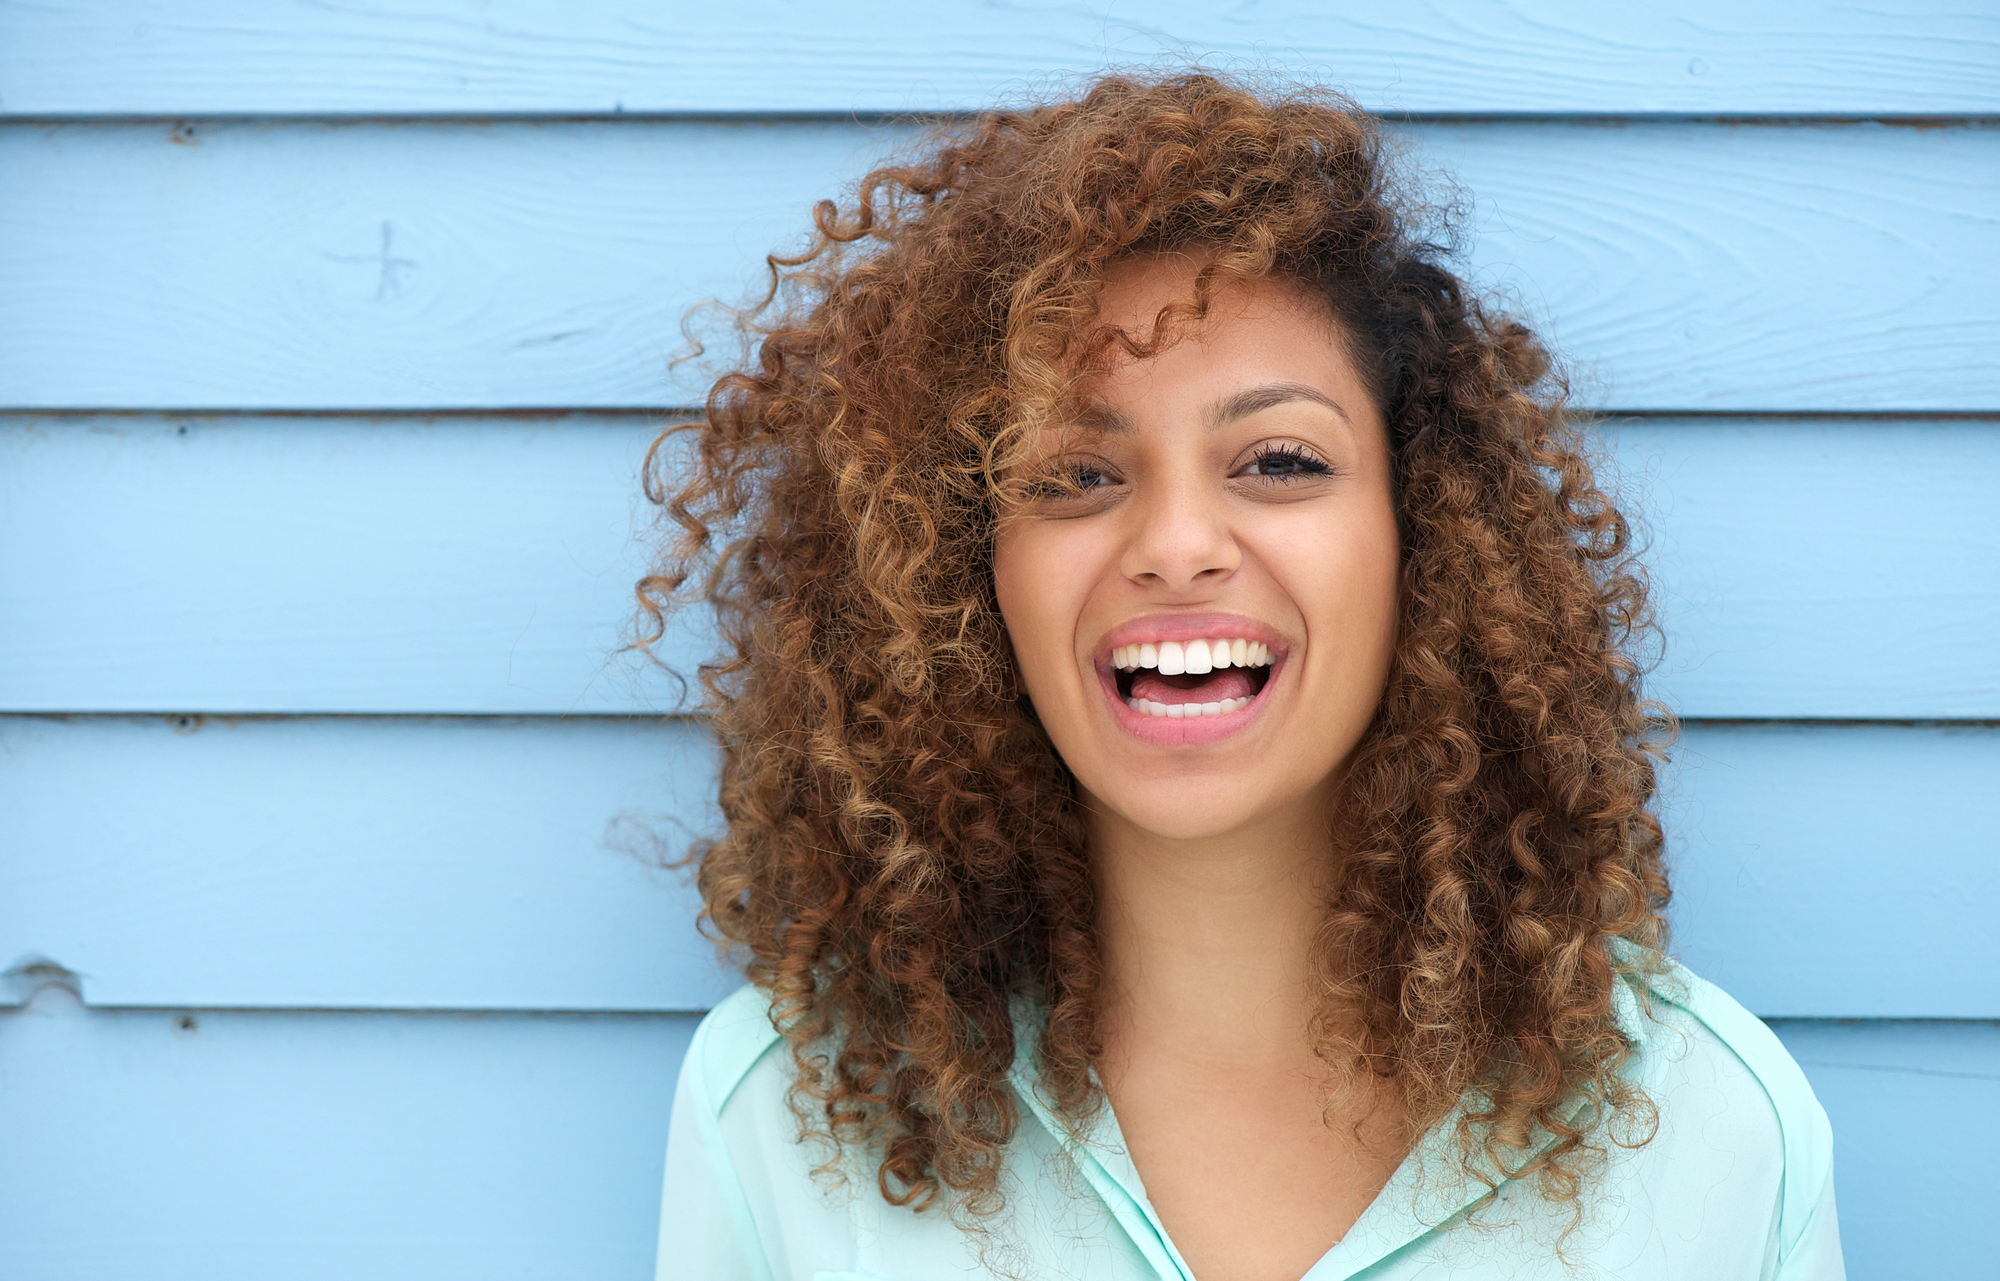 5 Benefits of Metal-Free Prosthetic Dentistry